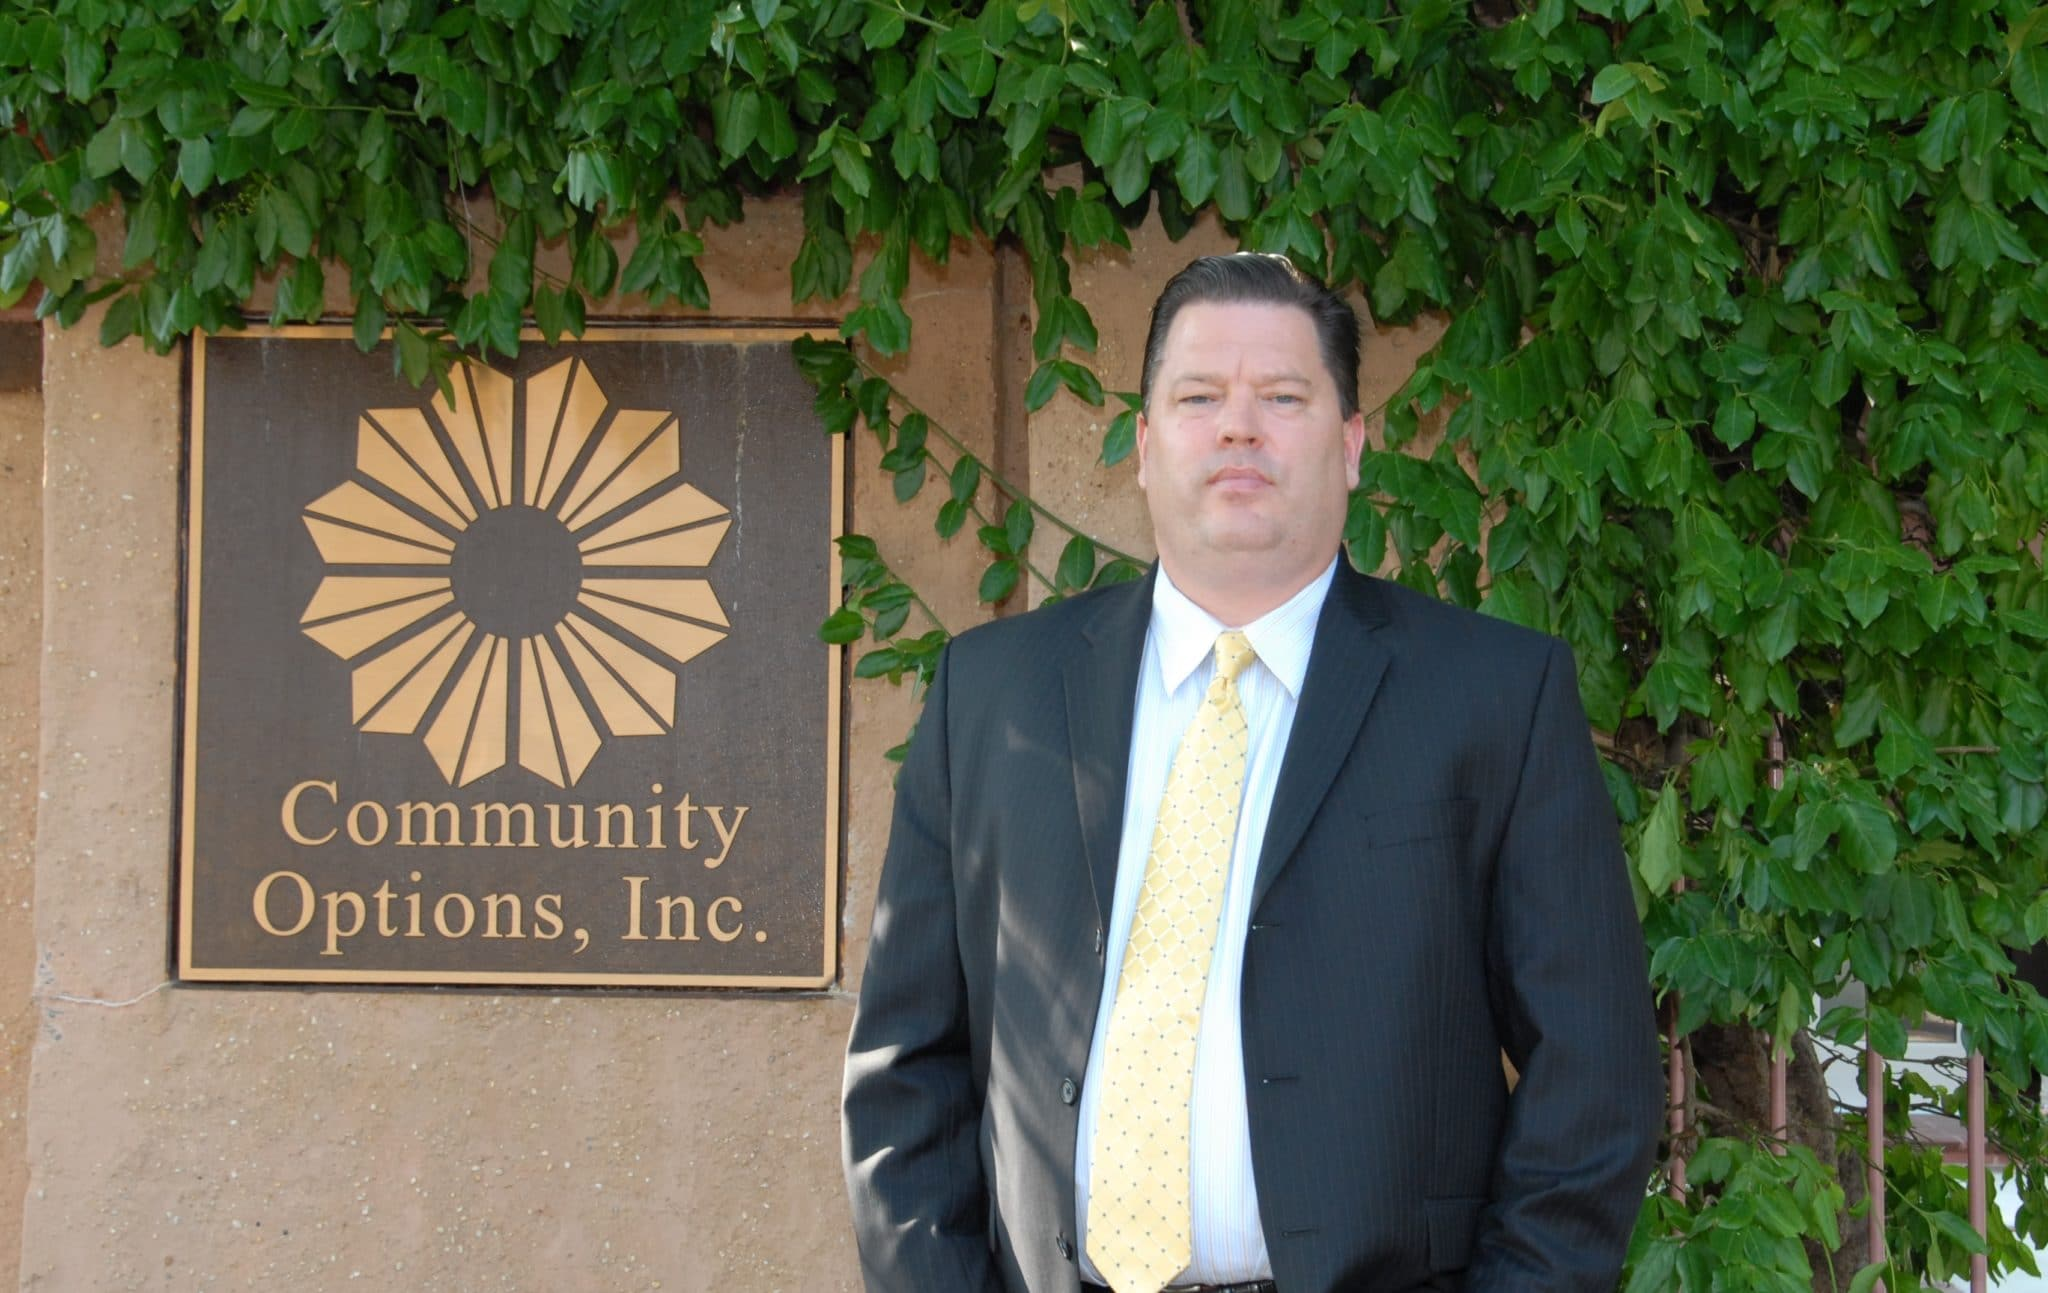 David Sweeney, Chief Financial Officer of Community Options, Inc., has been selected as a finalist for NJBiz's CFO of the Year Award